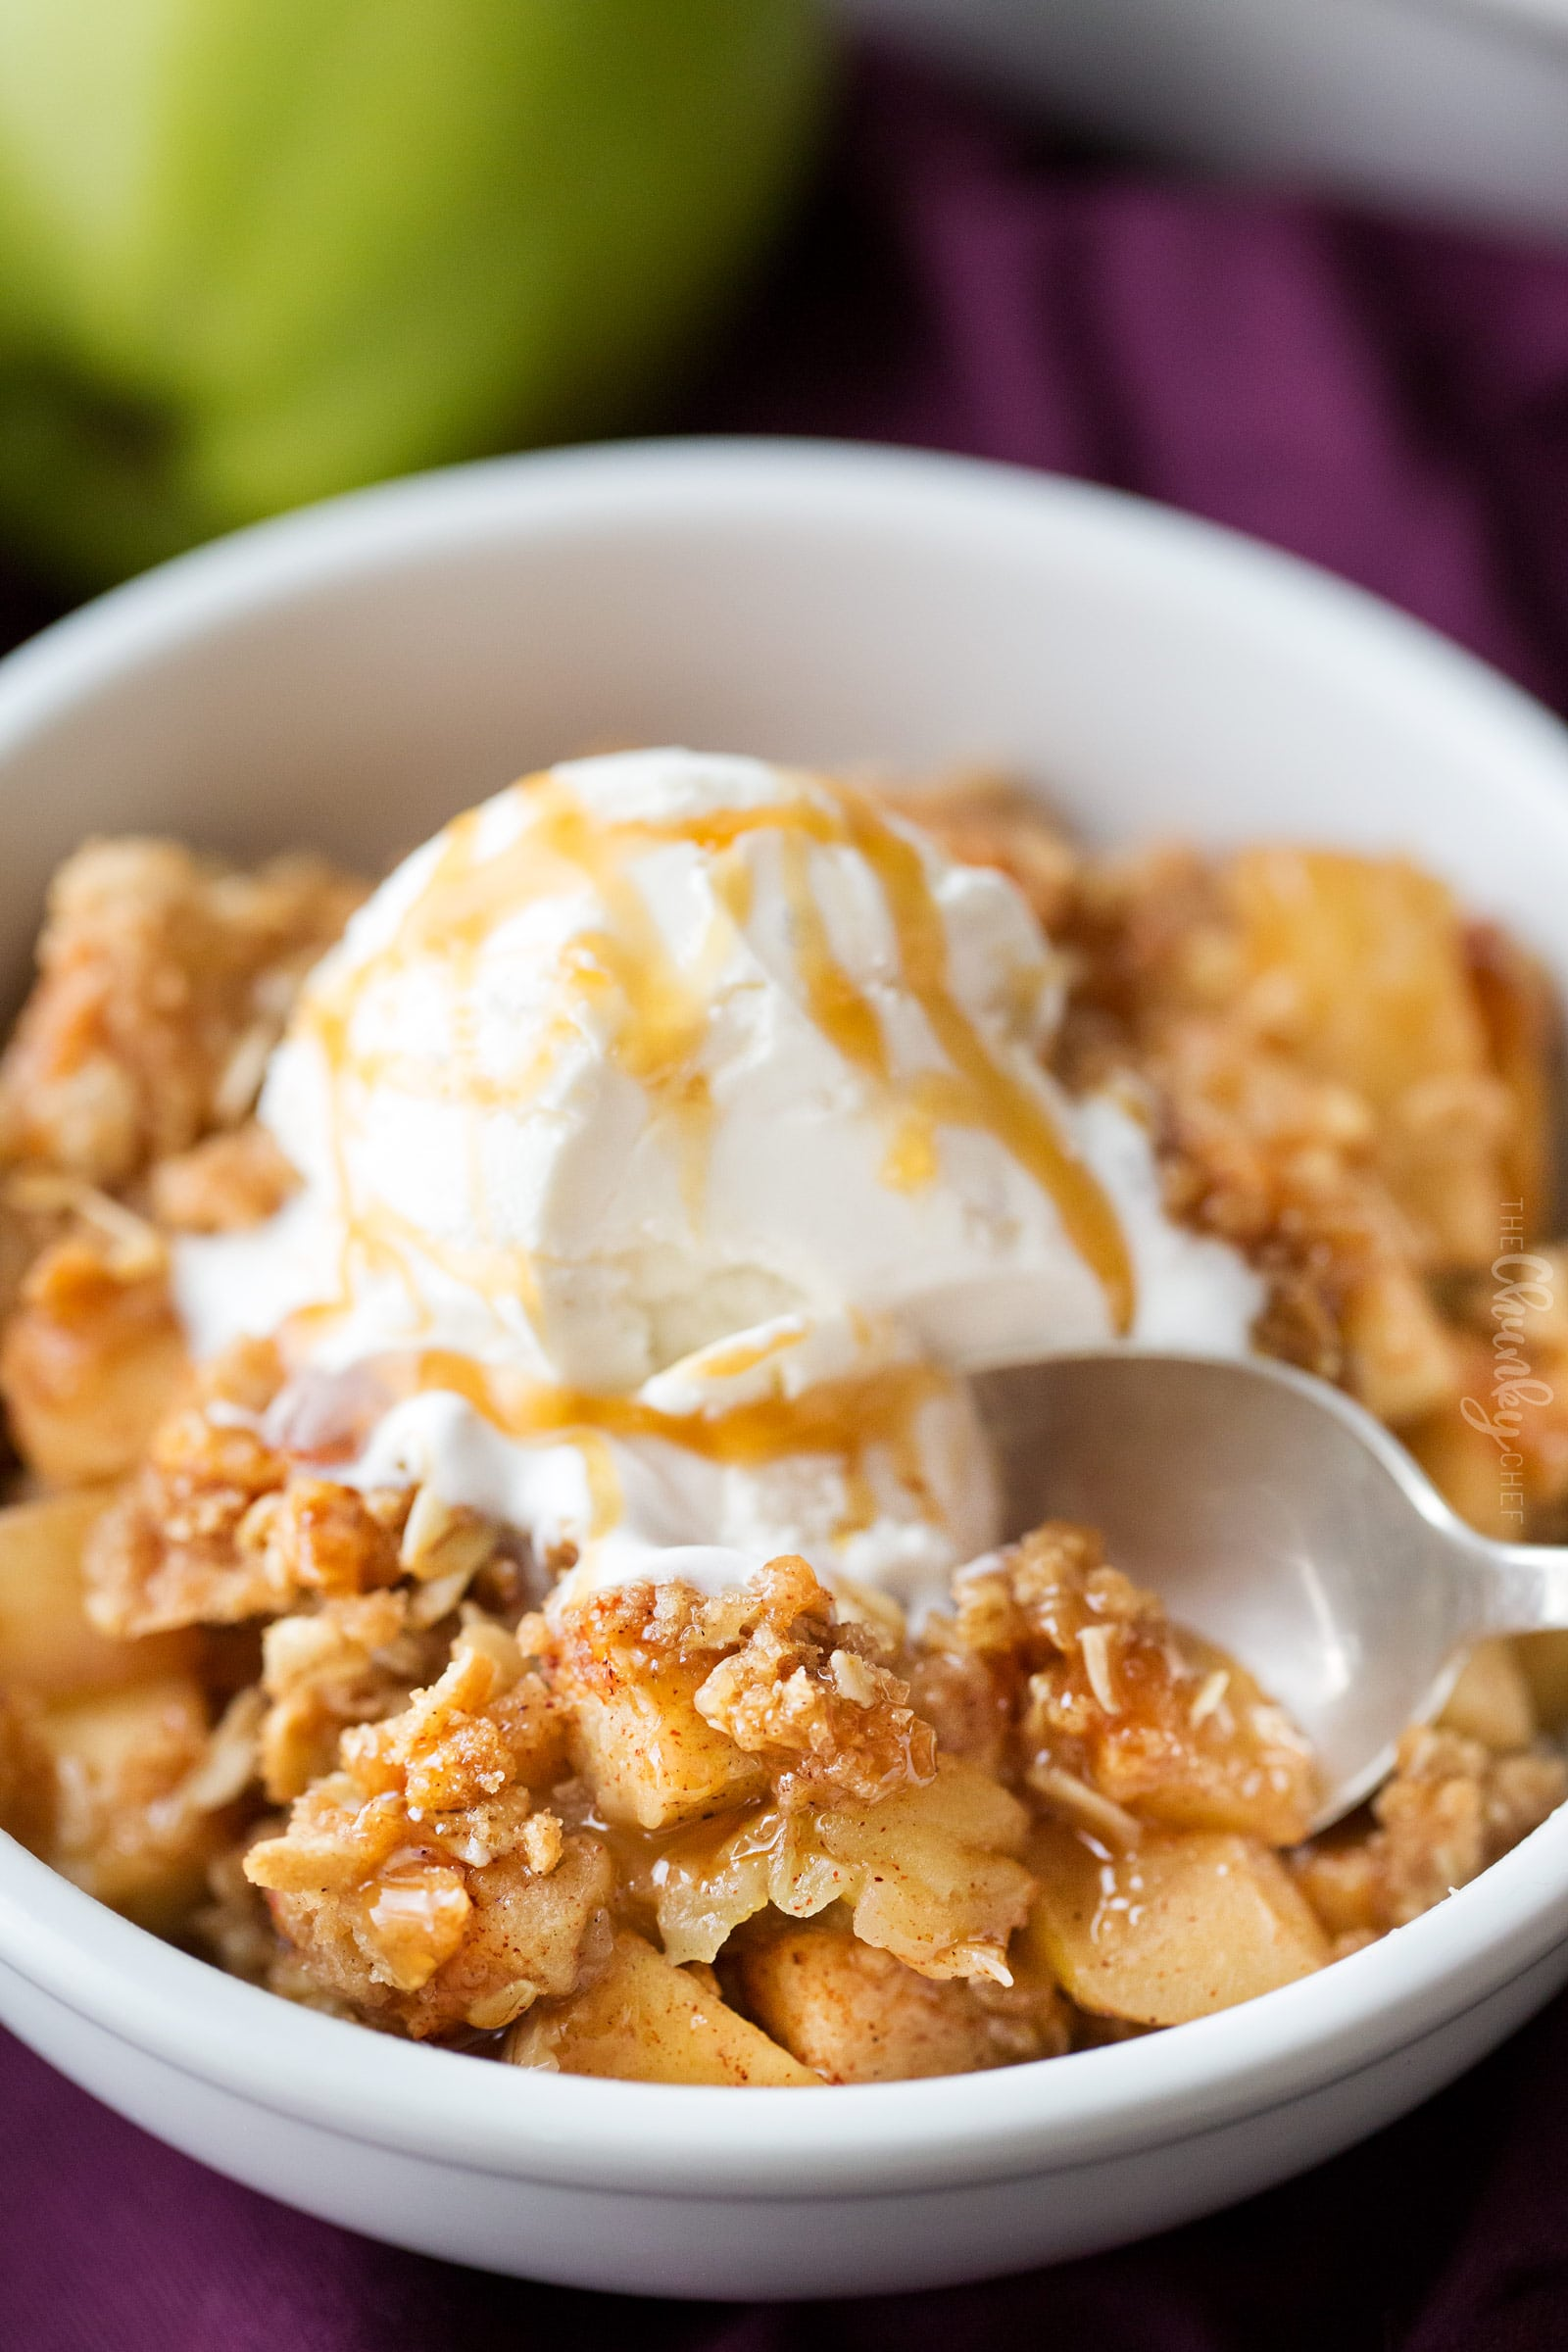 Apple crisp in a bowl with scoop of vanilla ice cream and caramel sauce, with a spoon taking a scoop